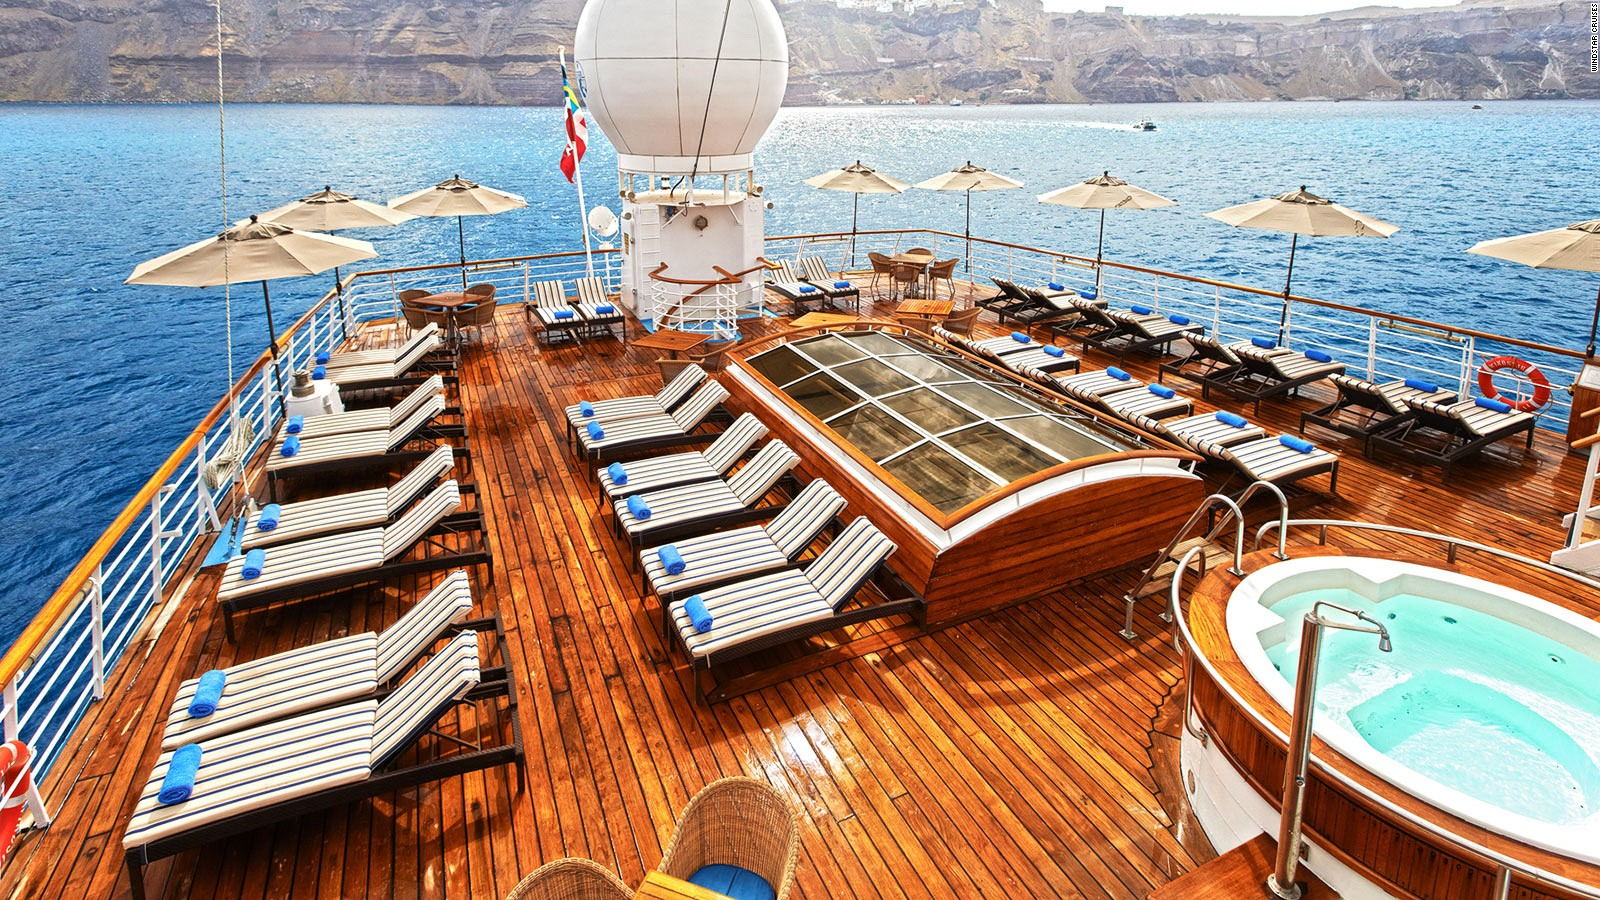 Small Cruise Ships Big On Luxury Intimacy Adventure CNN Travel - Cruise ship topless